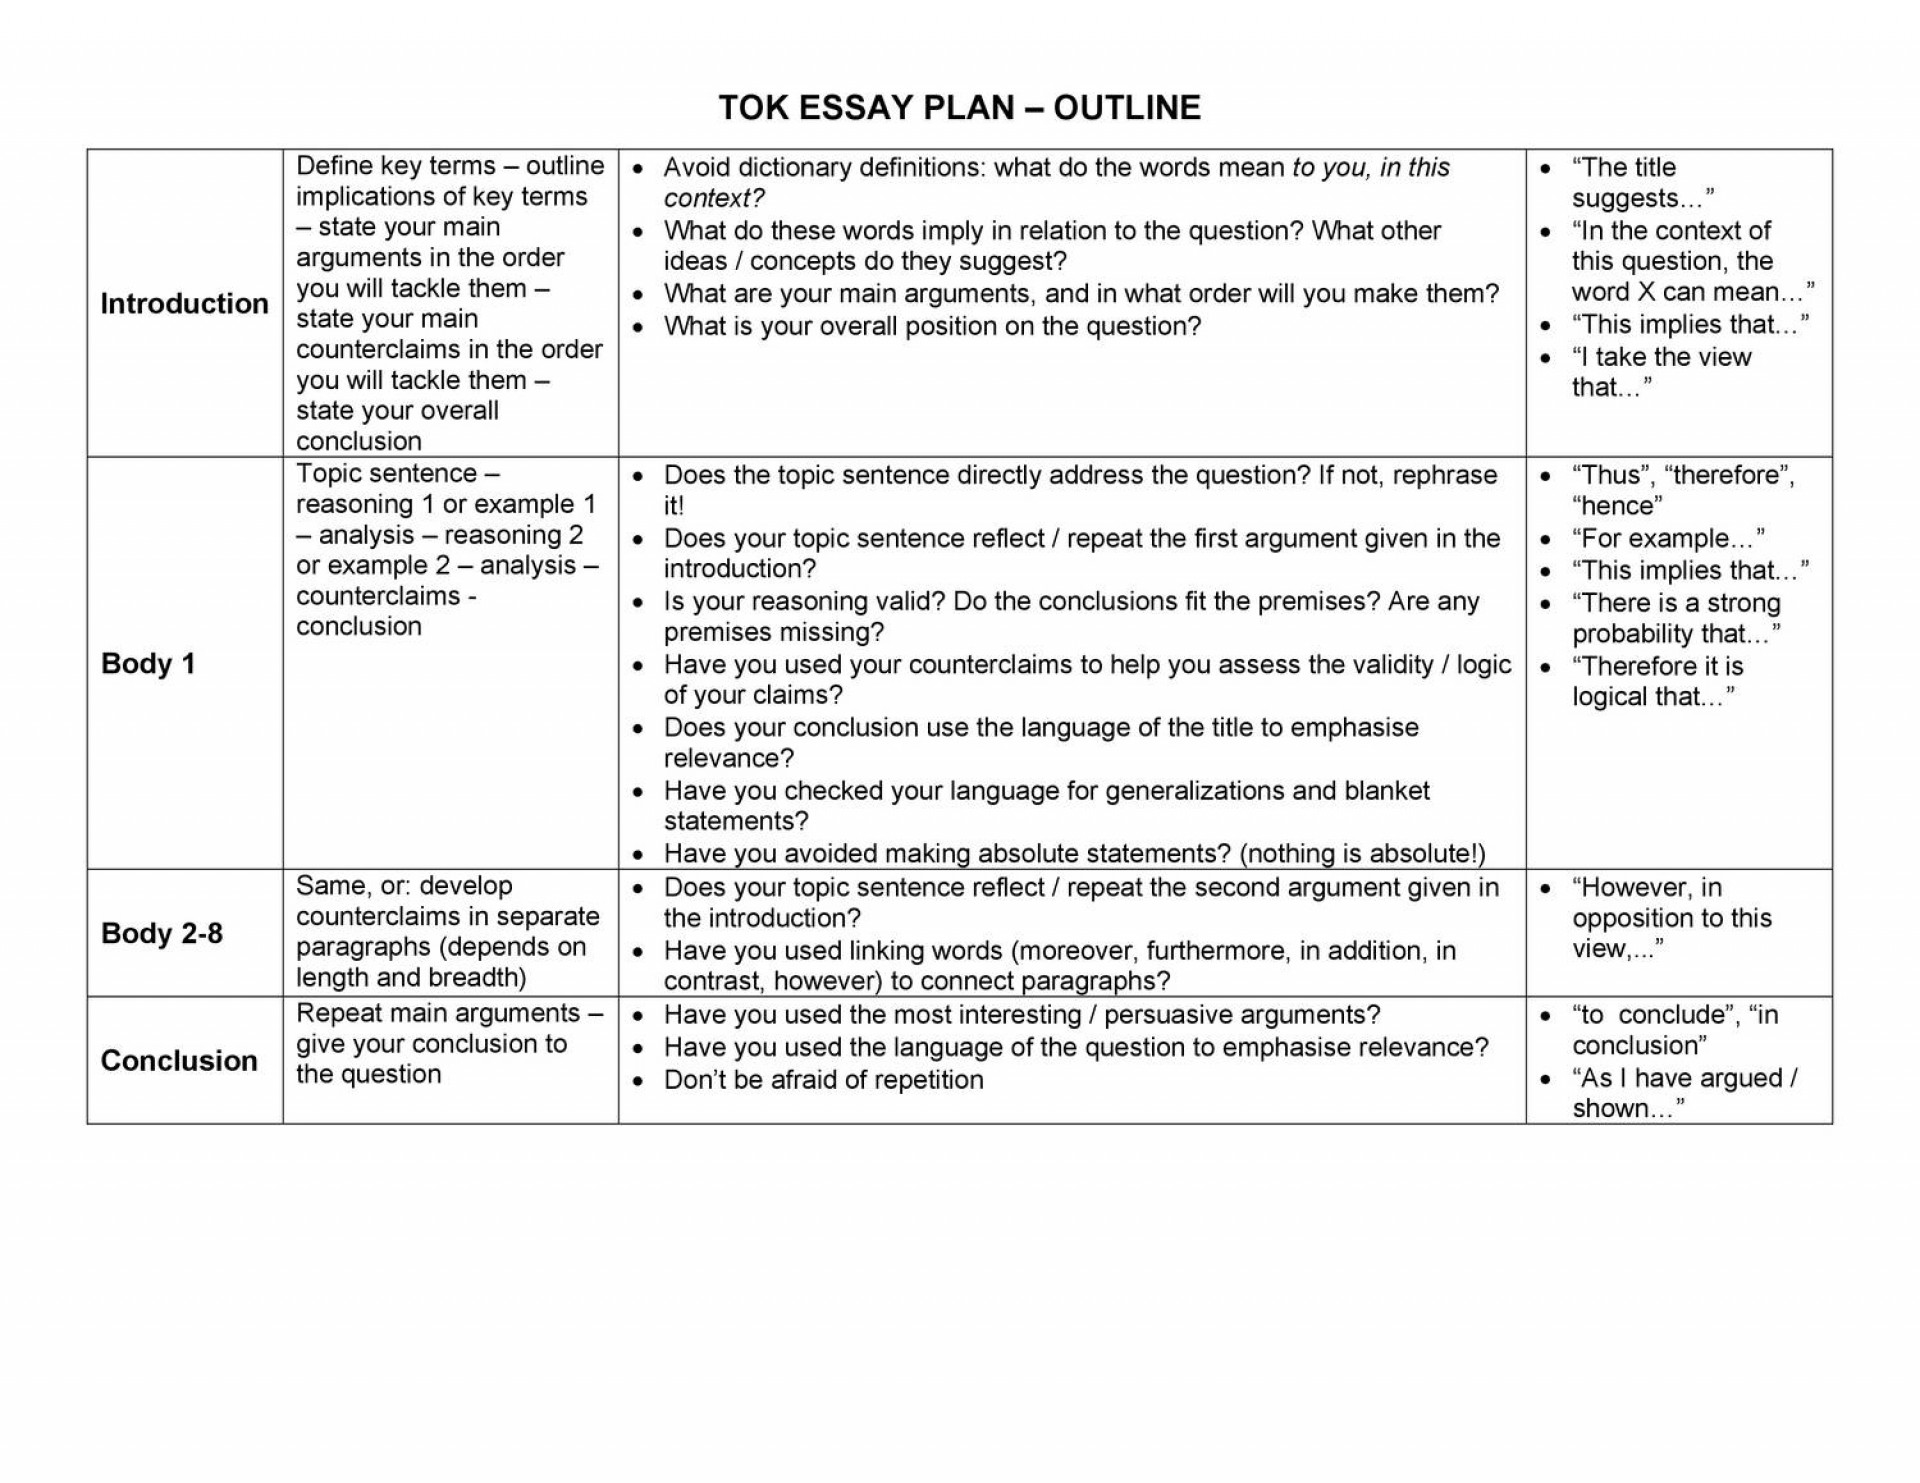 001 Tok Essay Plan Example Unforgettable Outline 2018 Pdf 1920